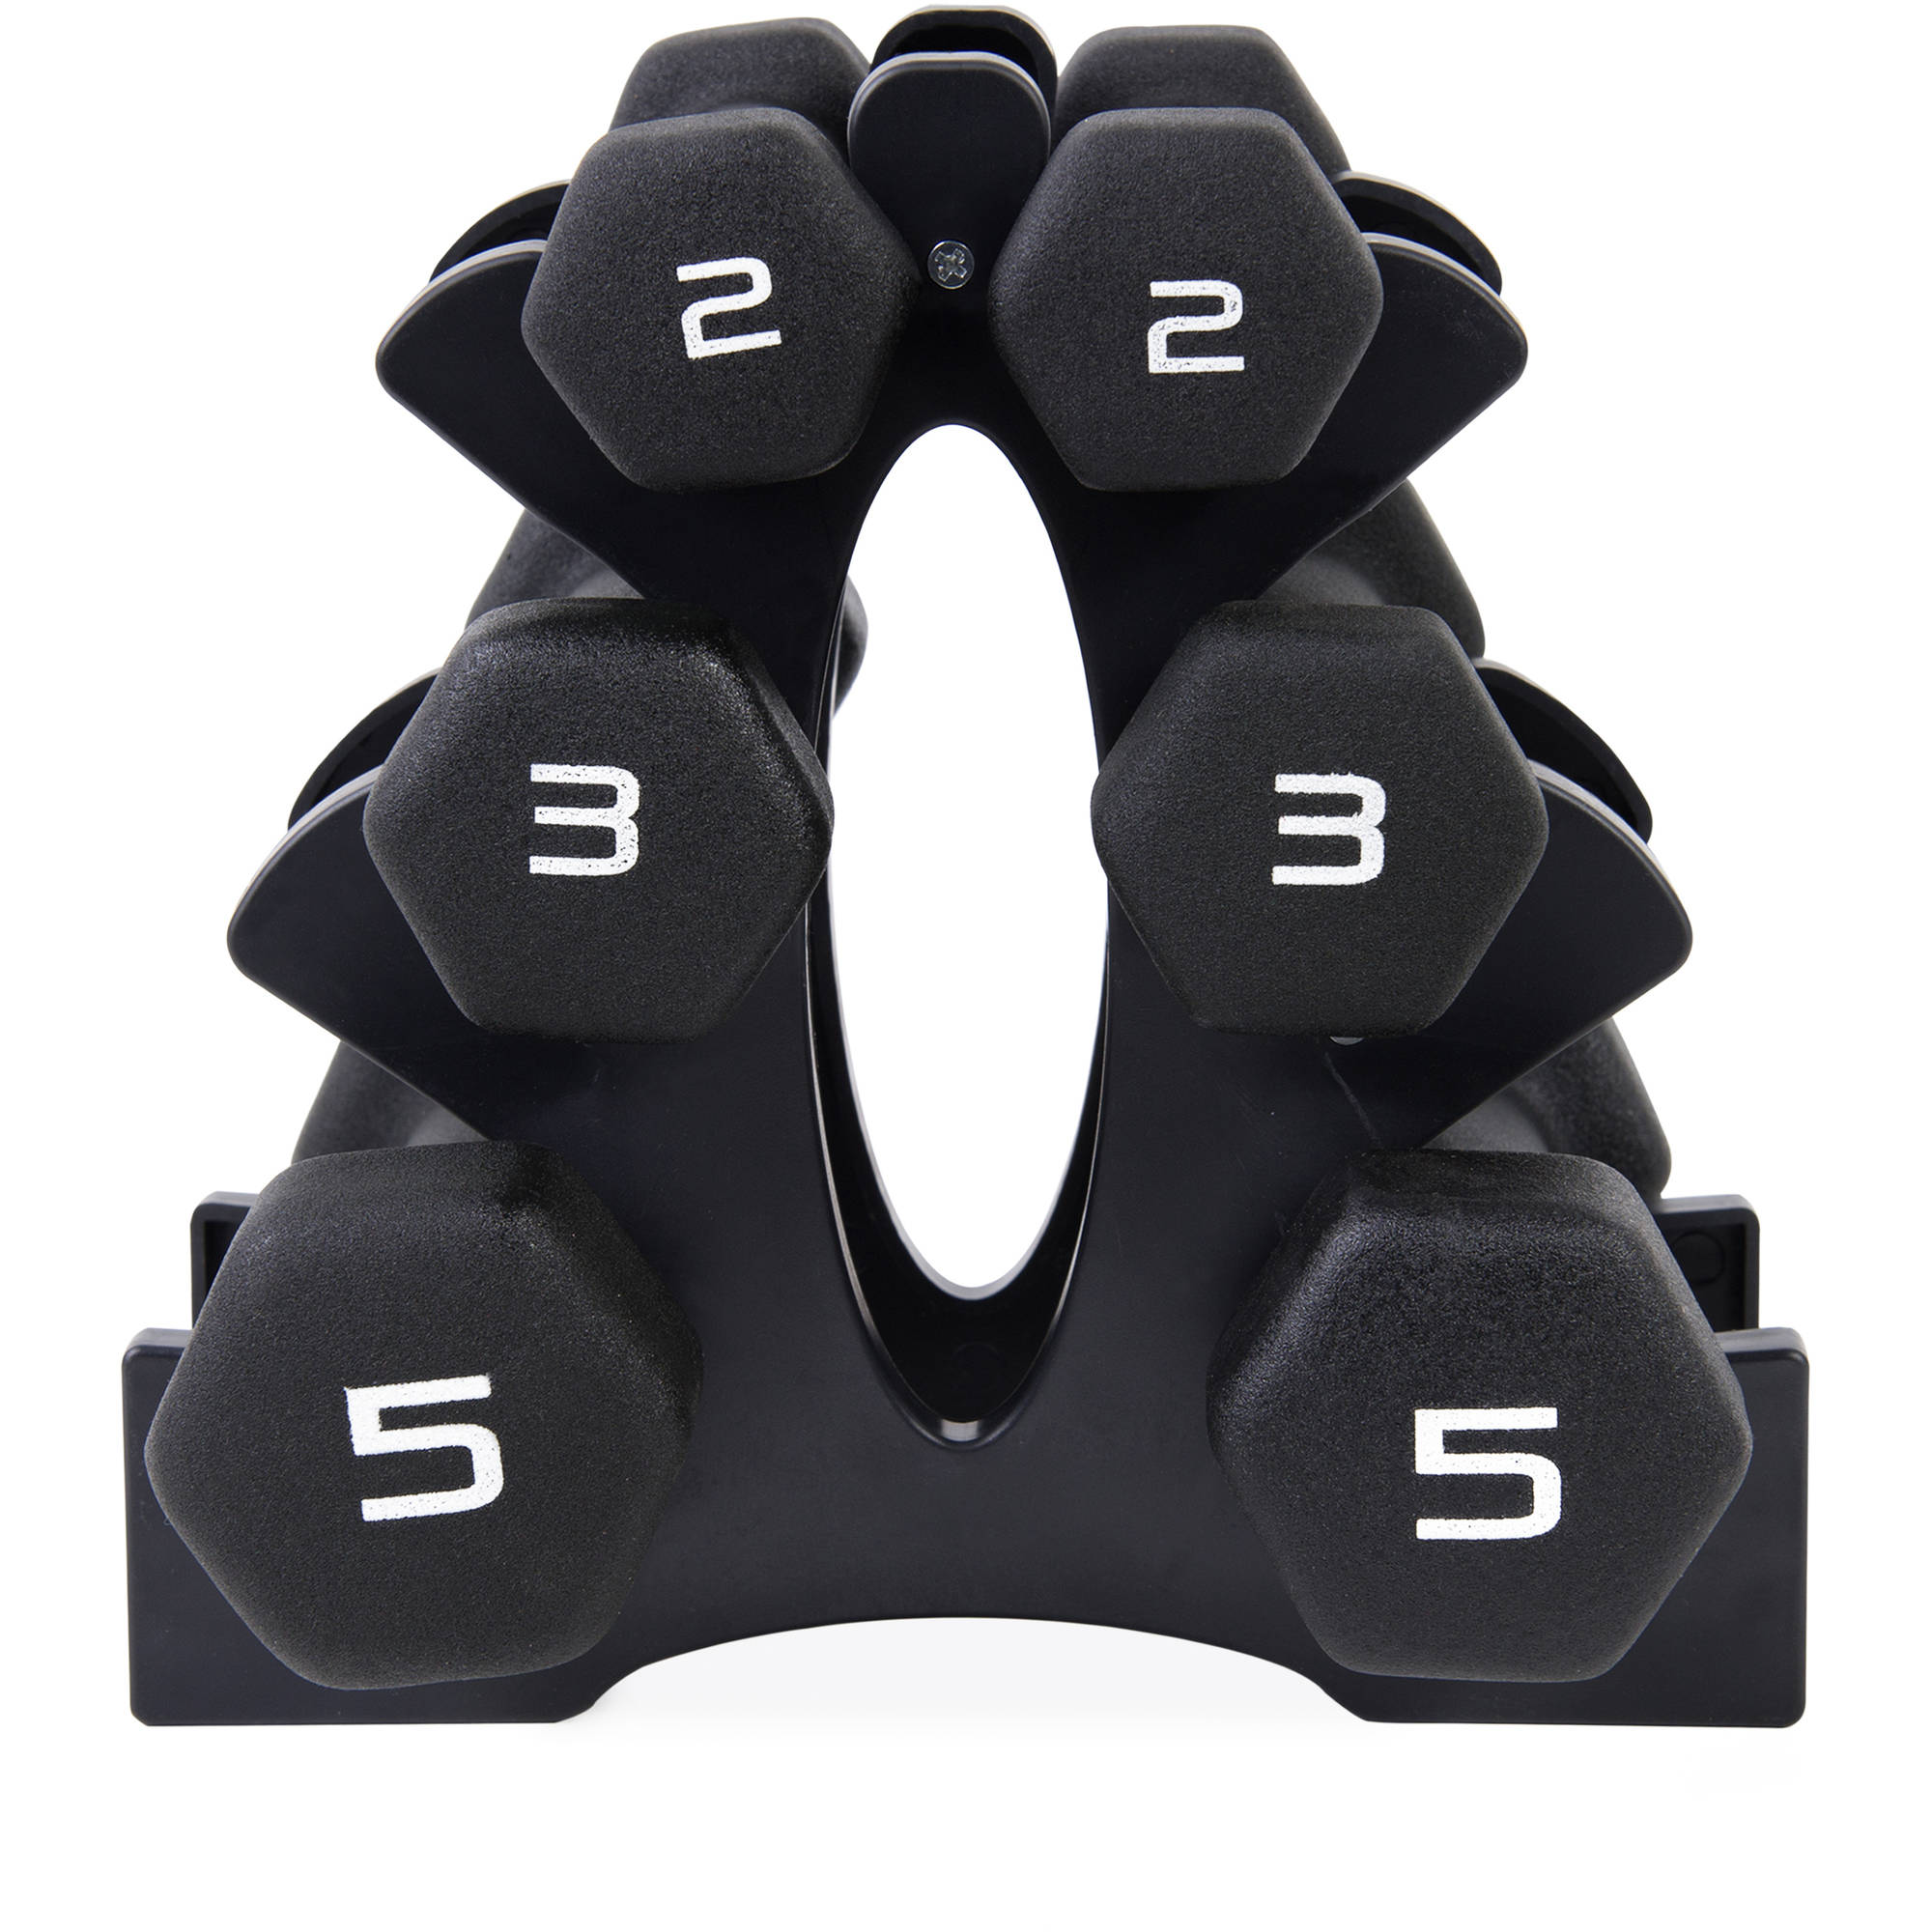 CAP 20 lb Neoprene Dumbbell Set with Rack